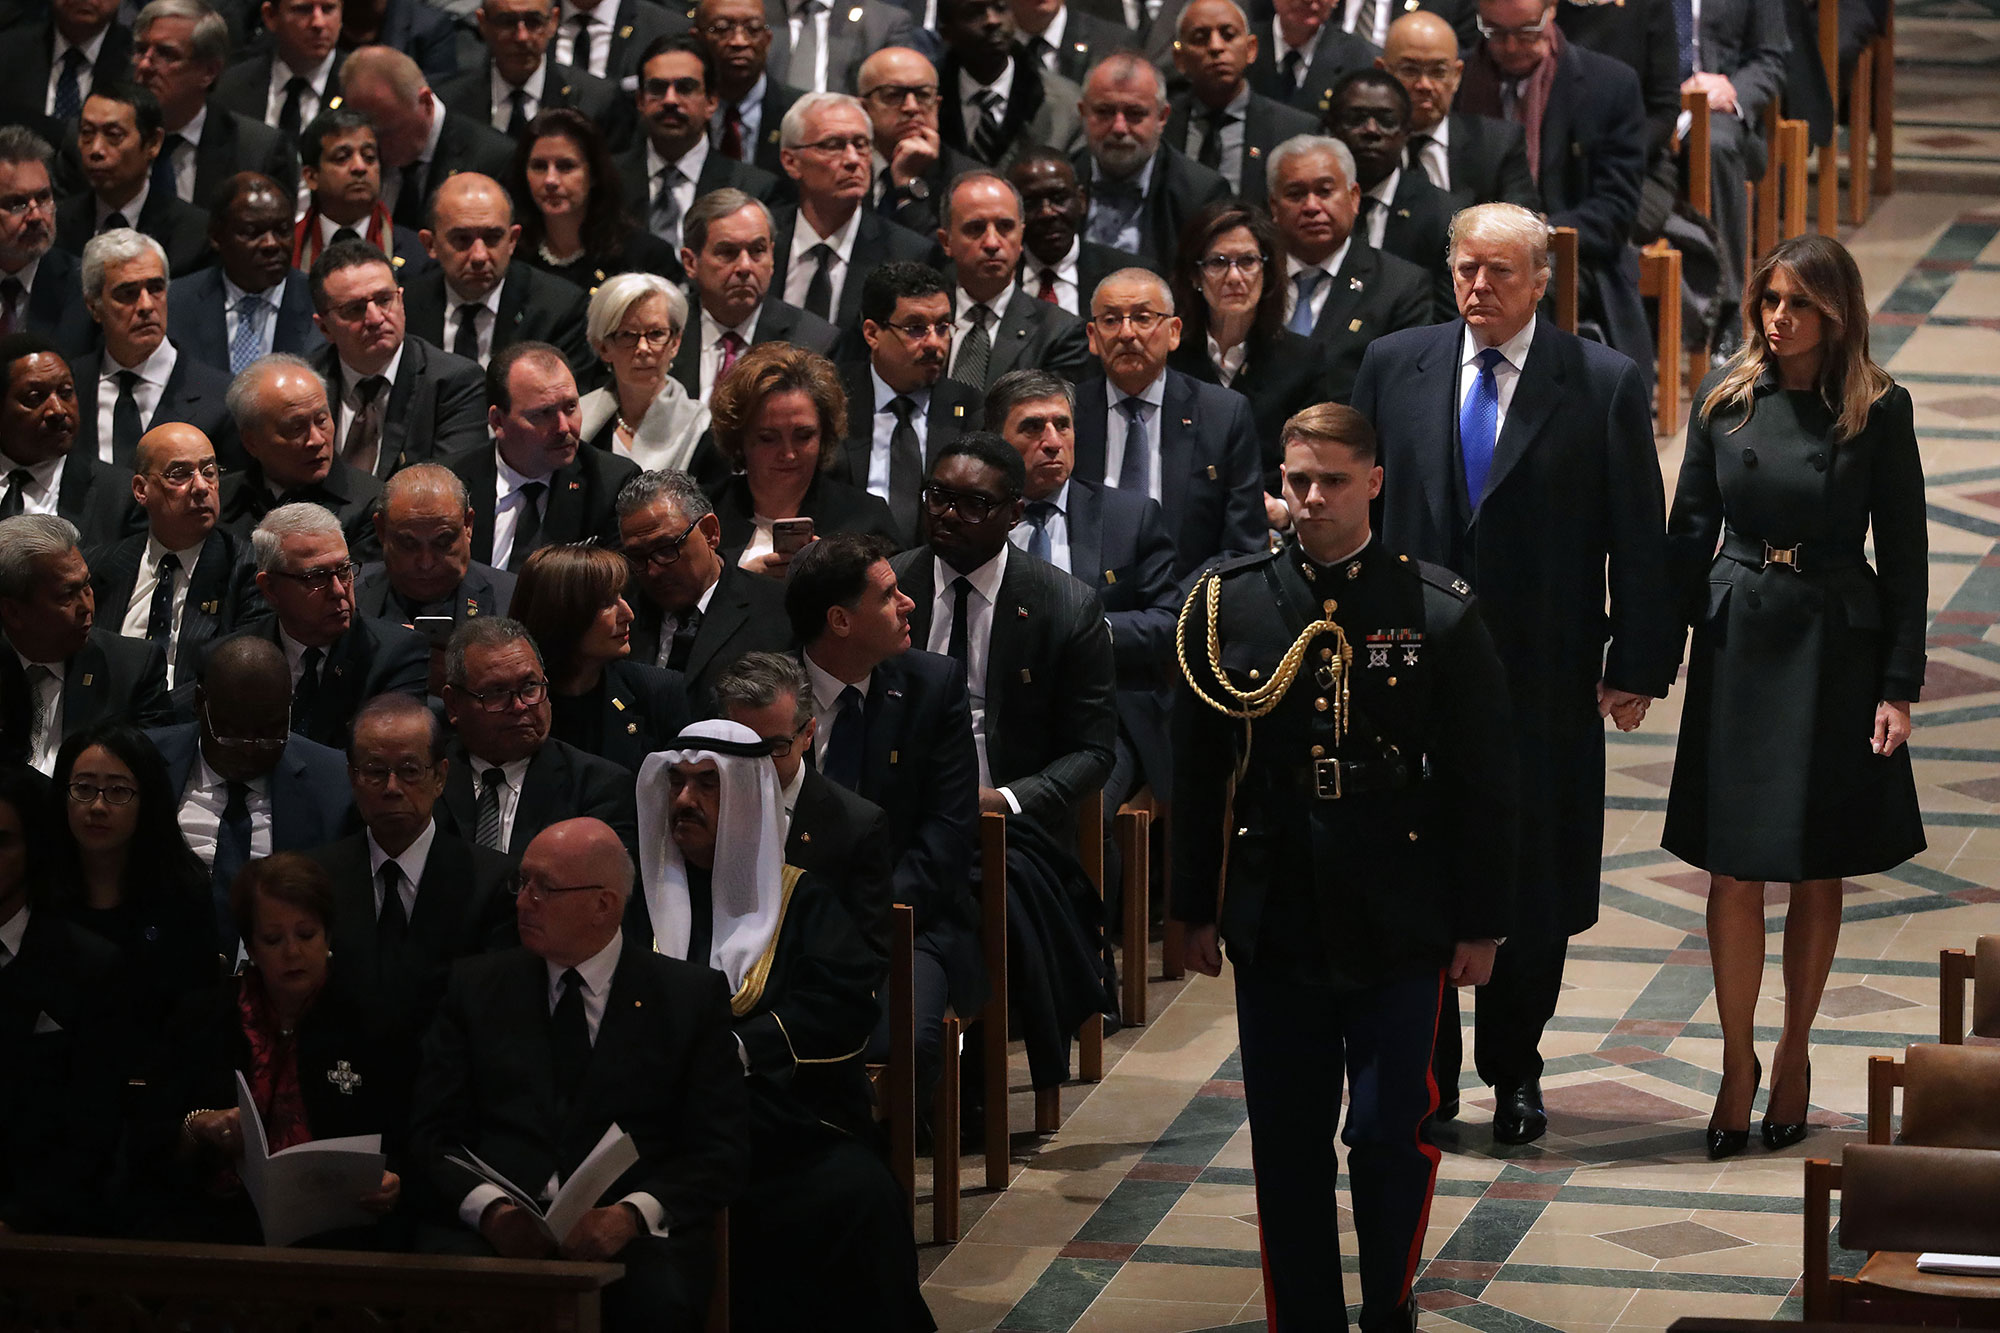 """george bush funeral - """"Looking forward to being with the Bush family. This is not a funeral, this is a day of celebration for a great man who has led a long and distinguished life,"""" the current president tweeted on Wednesday. """"He will be missed!"""""""